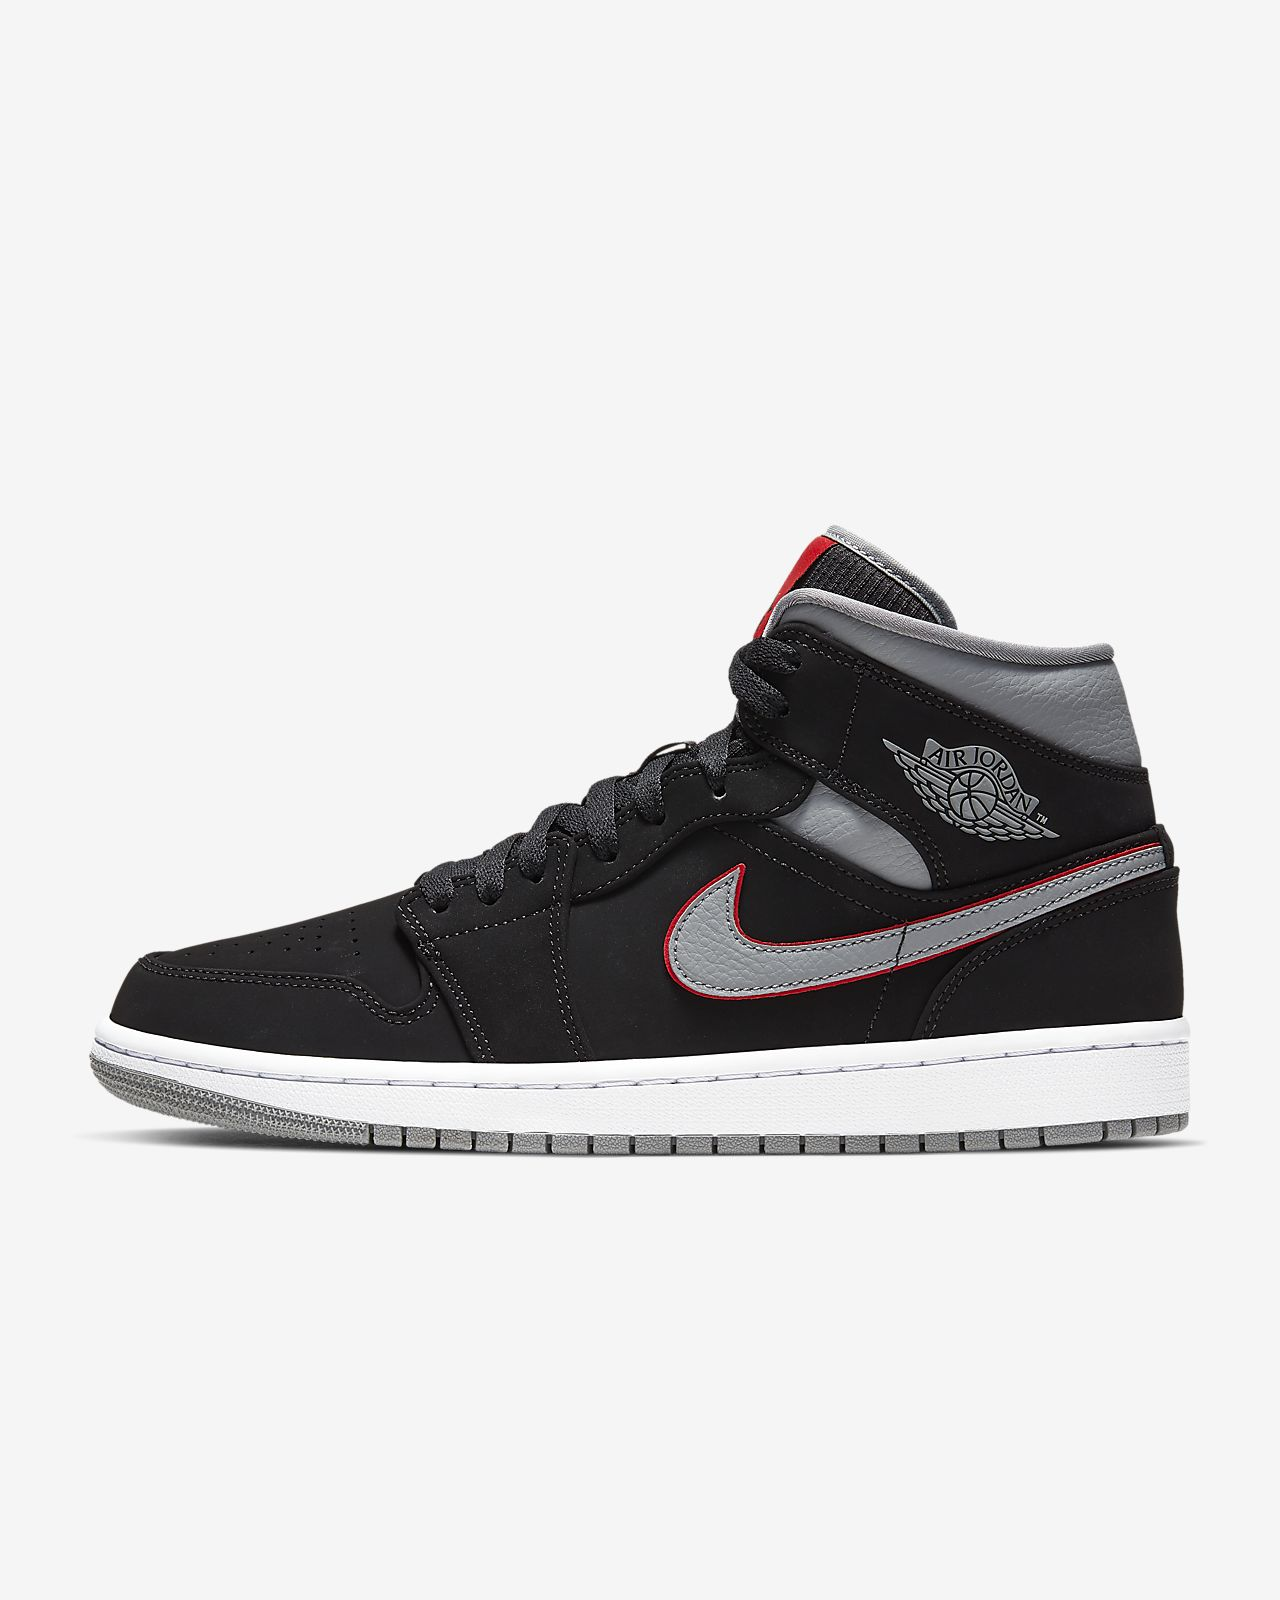 86fdbd0422 Air Jordan 1 Mid Men's Shoe